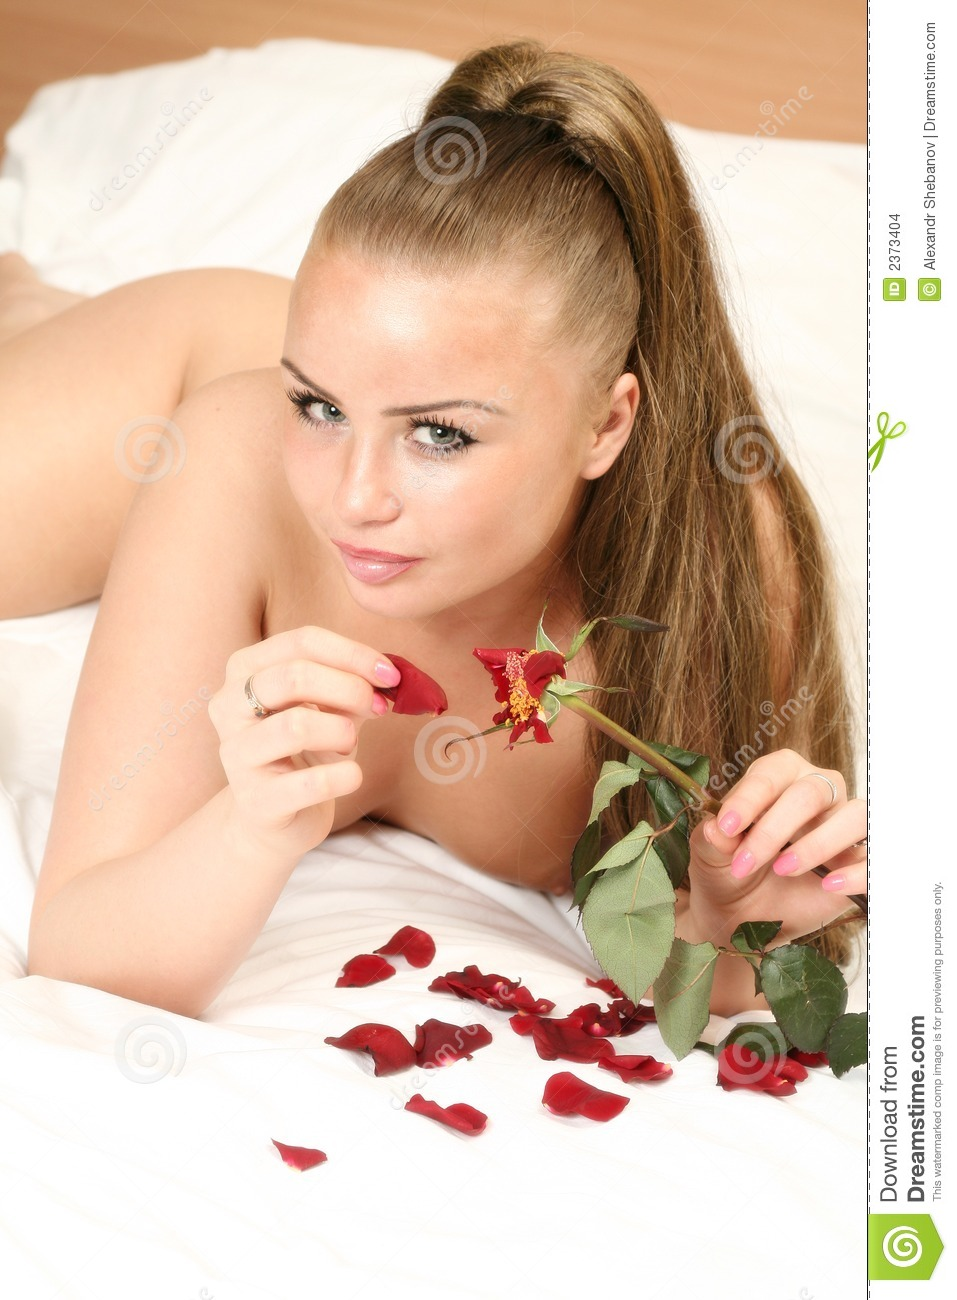 Naked Women On Bed With Rose